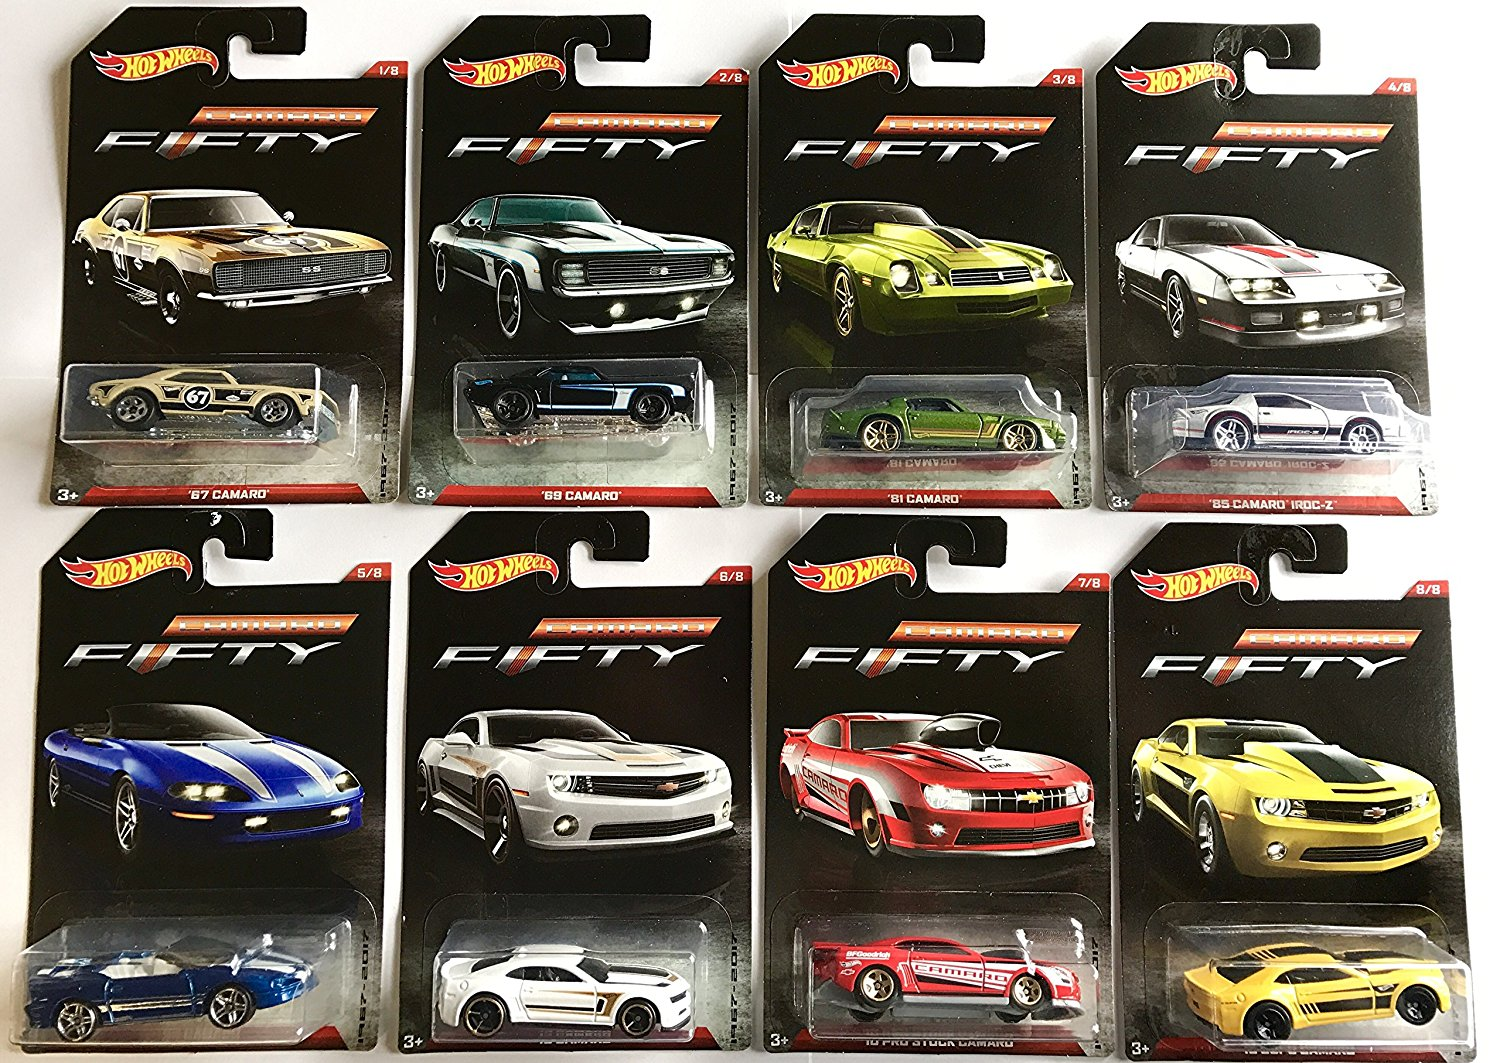 Camaro Fifty 1967-2017 Exclusive 8 Car Set, Hot Wheels Camaro Fifty 1967-2017 Exclusive 8... by